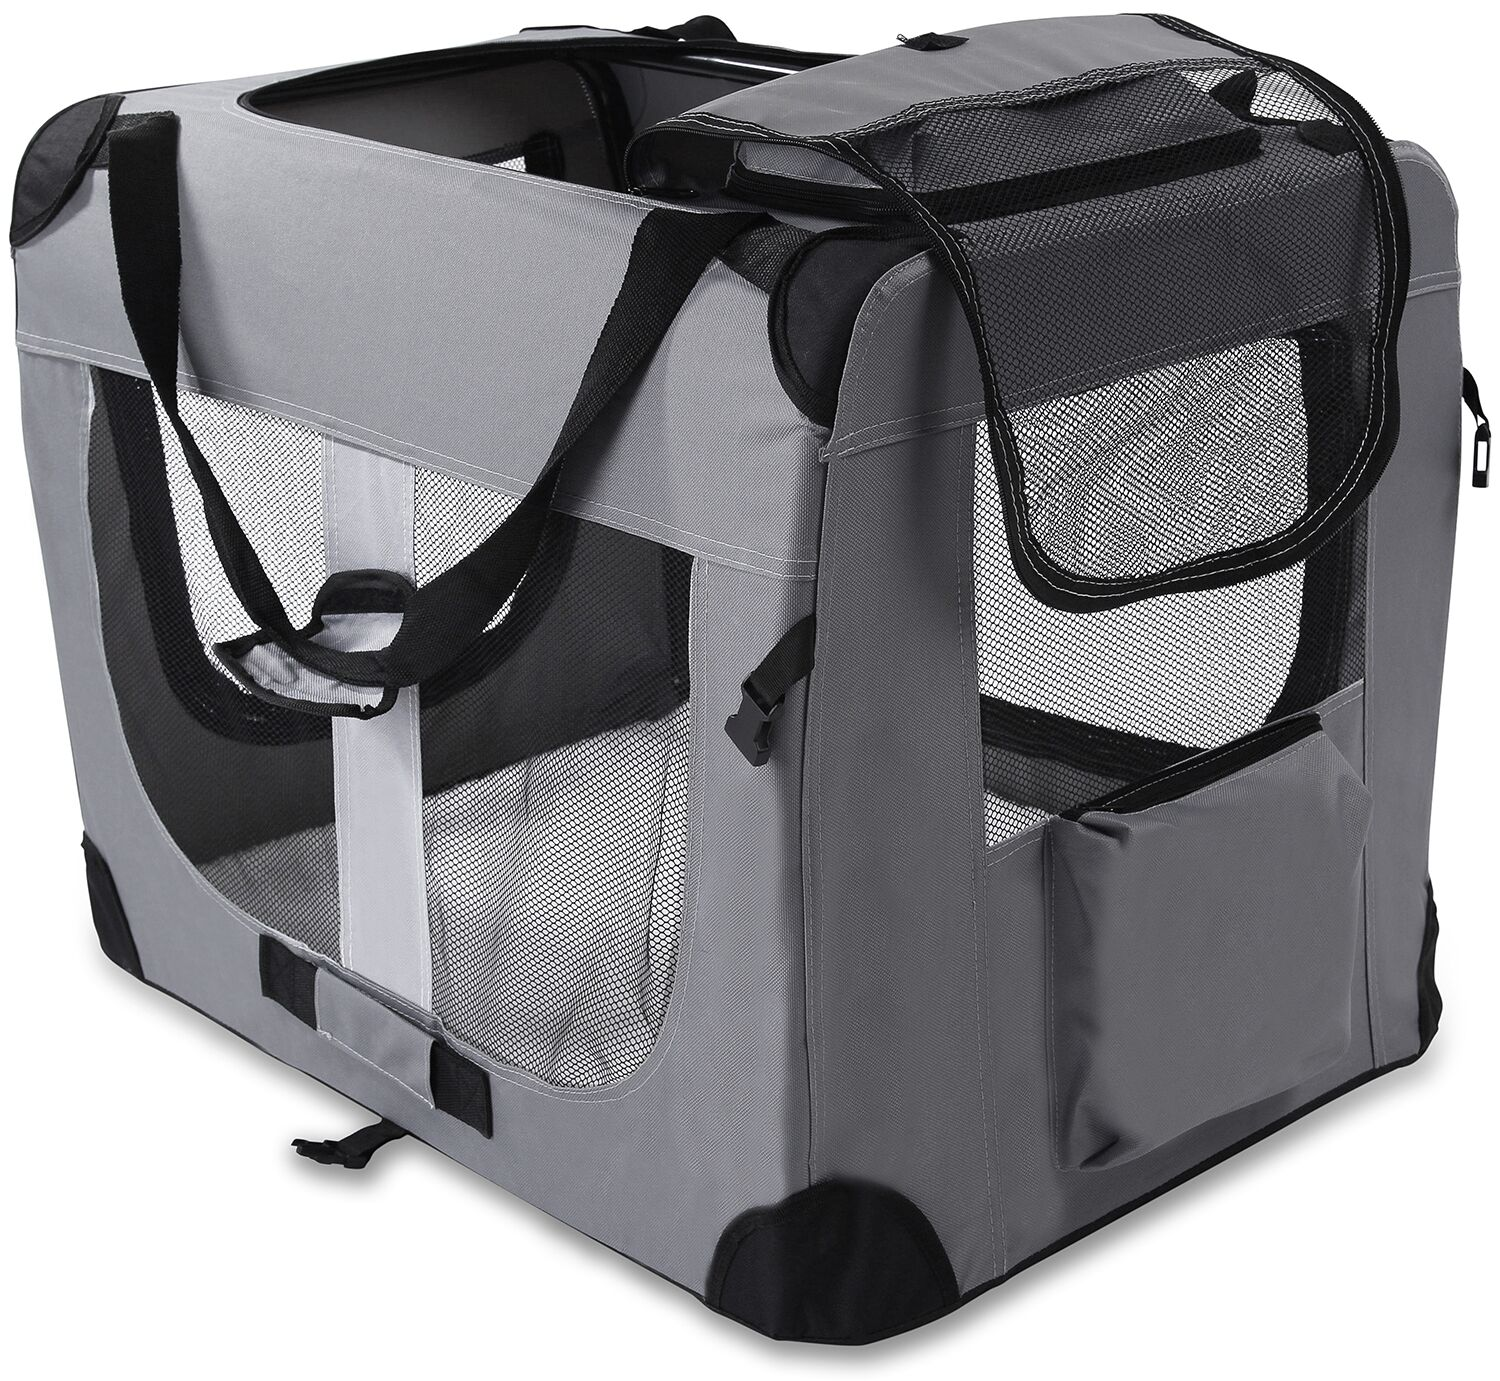 Soft-Sided Pet Carrier Size: 20